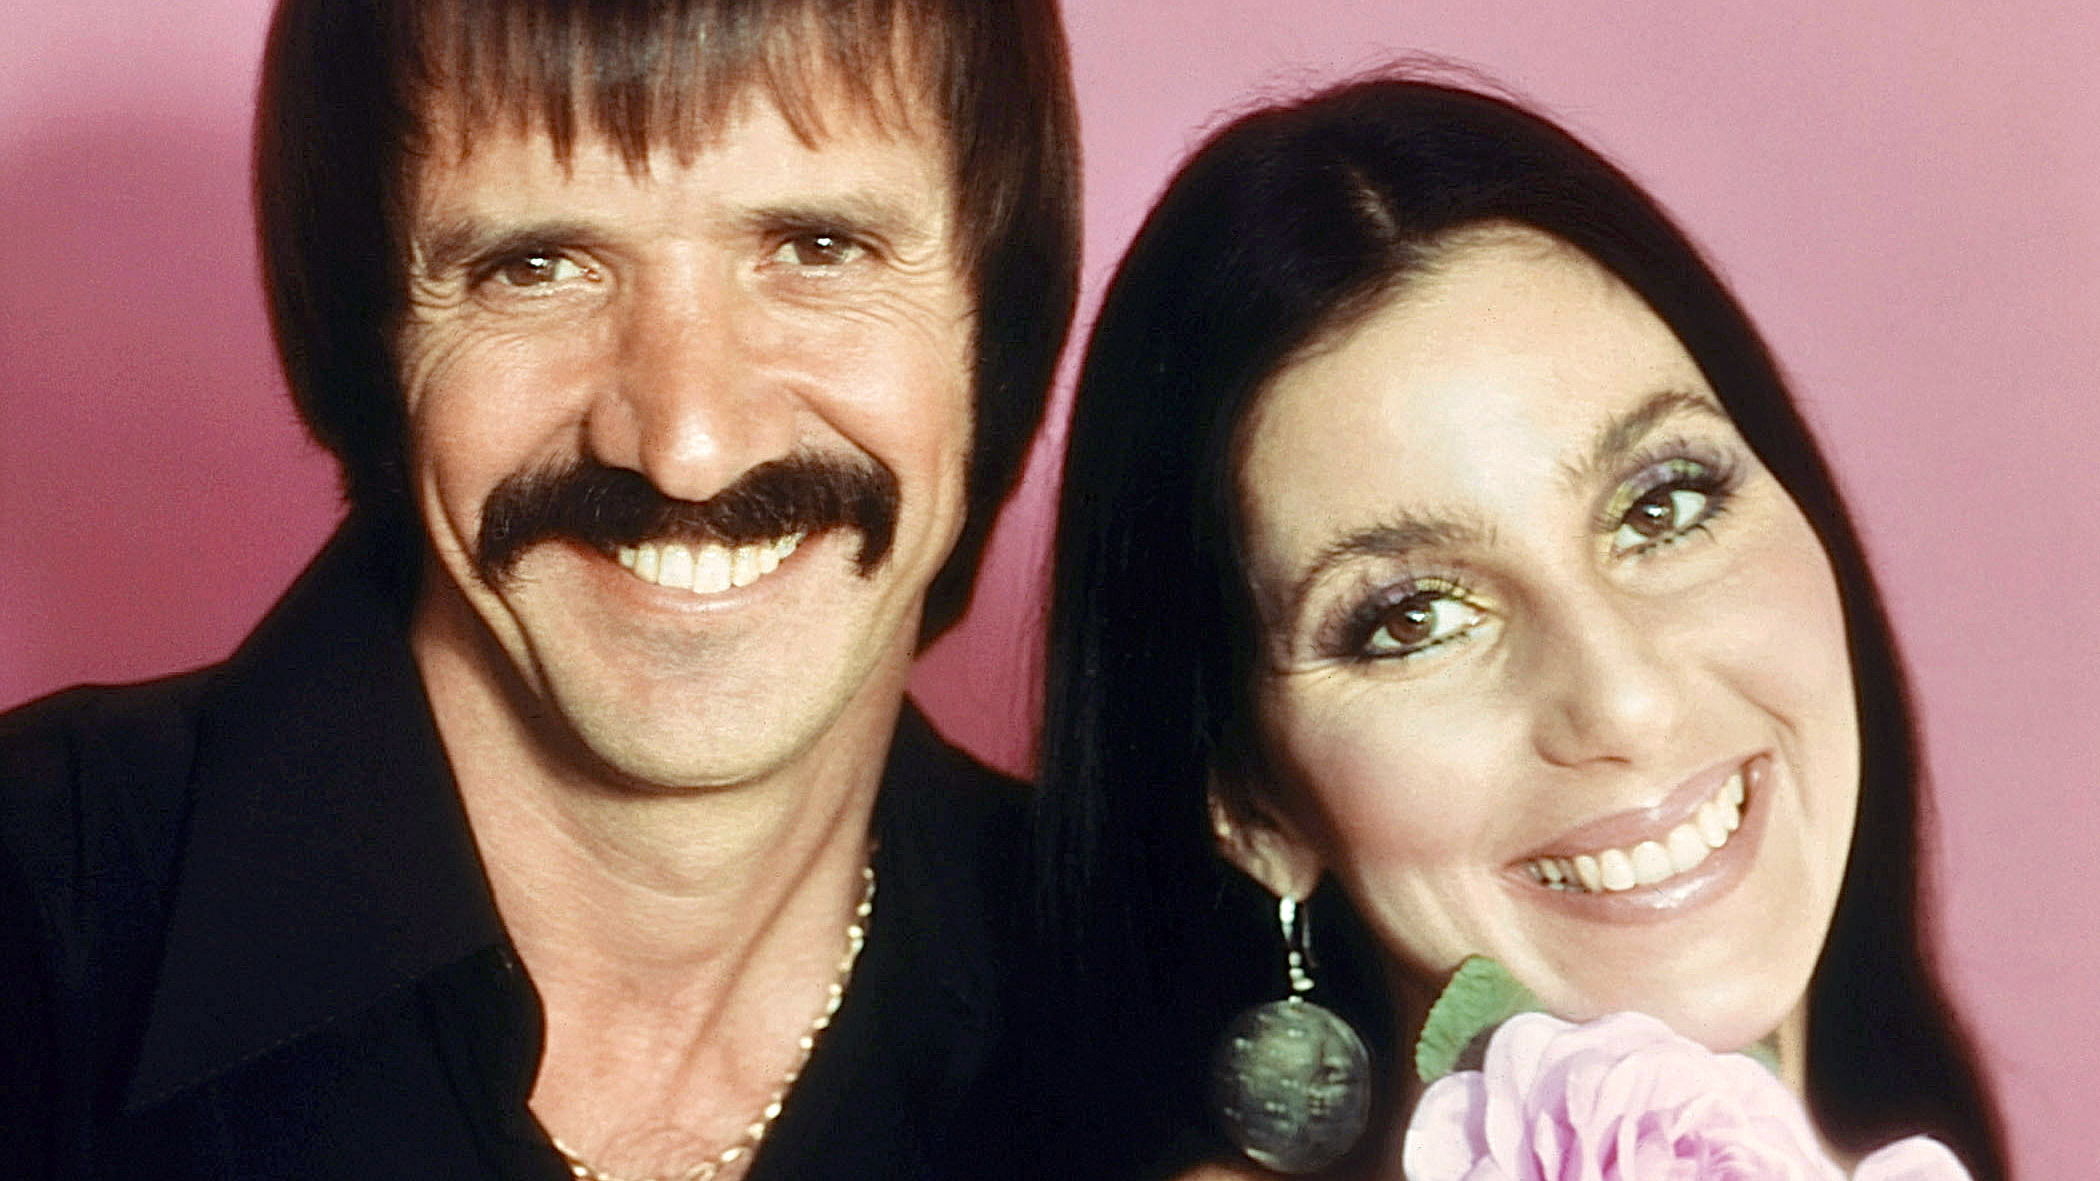 sonny_and_cher_question_7_16-9